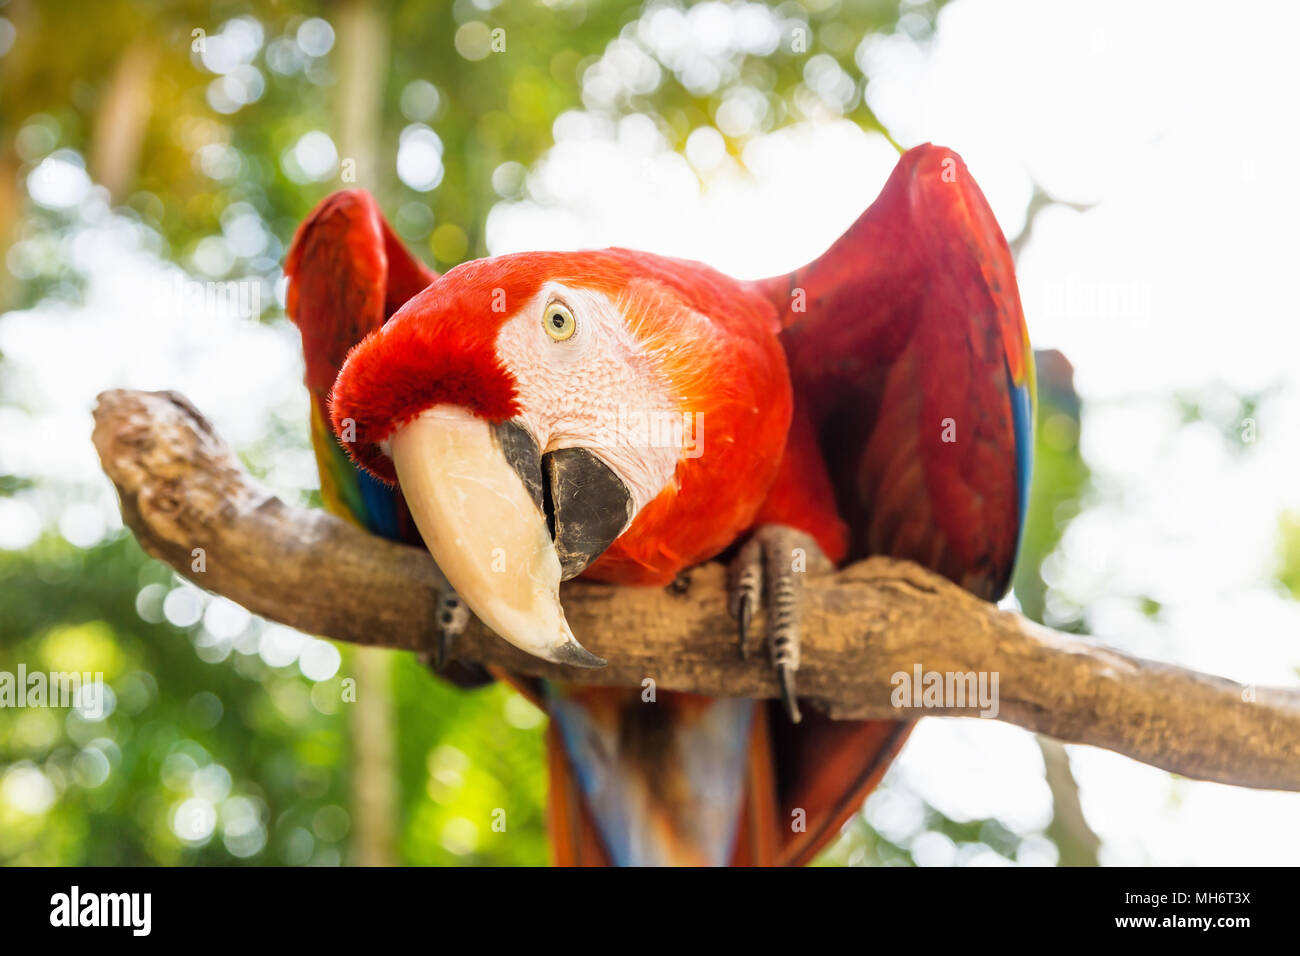 Playful looking Scarlett Macaw bird parrot with red in Macaw Mountain, Copan Ruinas, Honduras, Central America - Stock Image